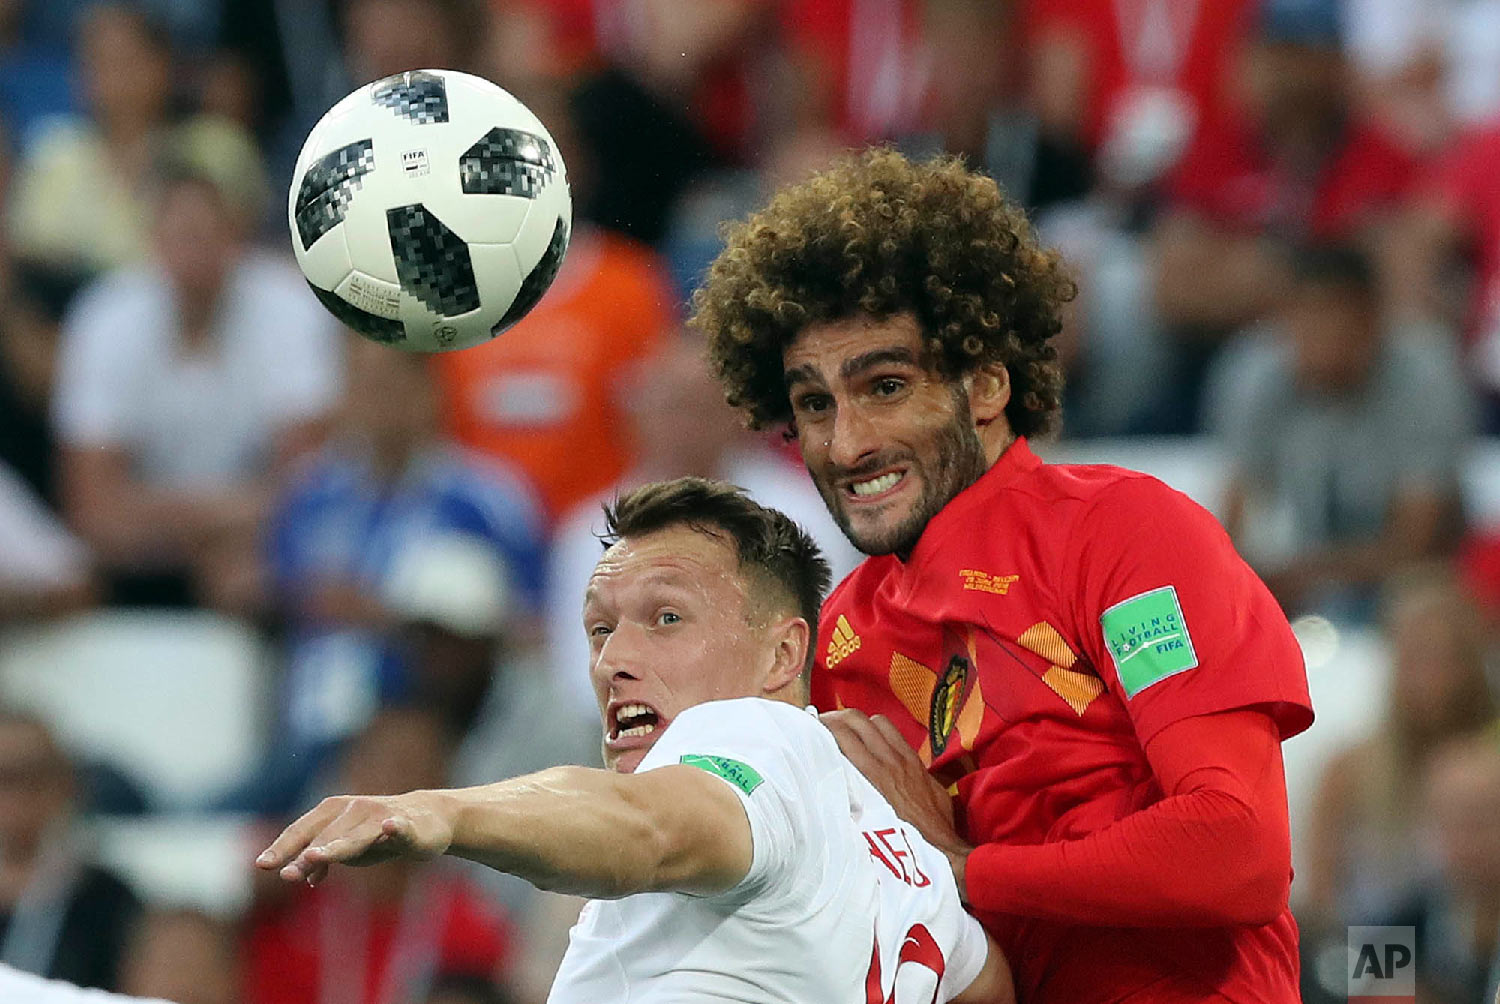 England's Ashley Young, left, and Belgium's Marouane Fellaini challenge for the ball during the group G match between England and Belgium at the 2018 soccer World Cup in the Kaliningrad Stadium in Kaliningrad, Russia, Thursday, June 28, 2018. (AP Photo/Czarek Sokolowski)